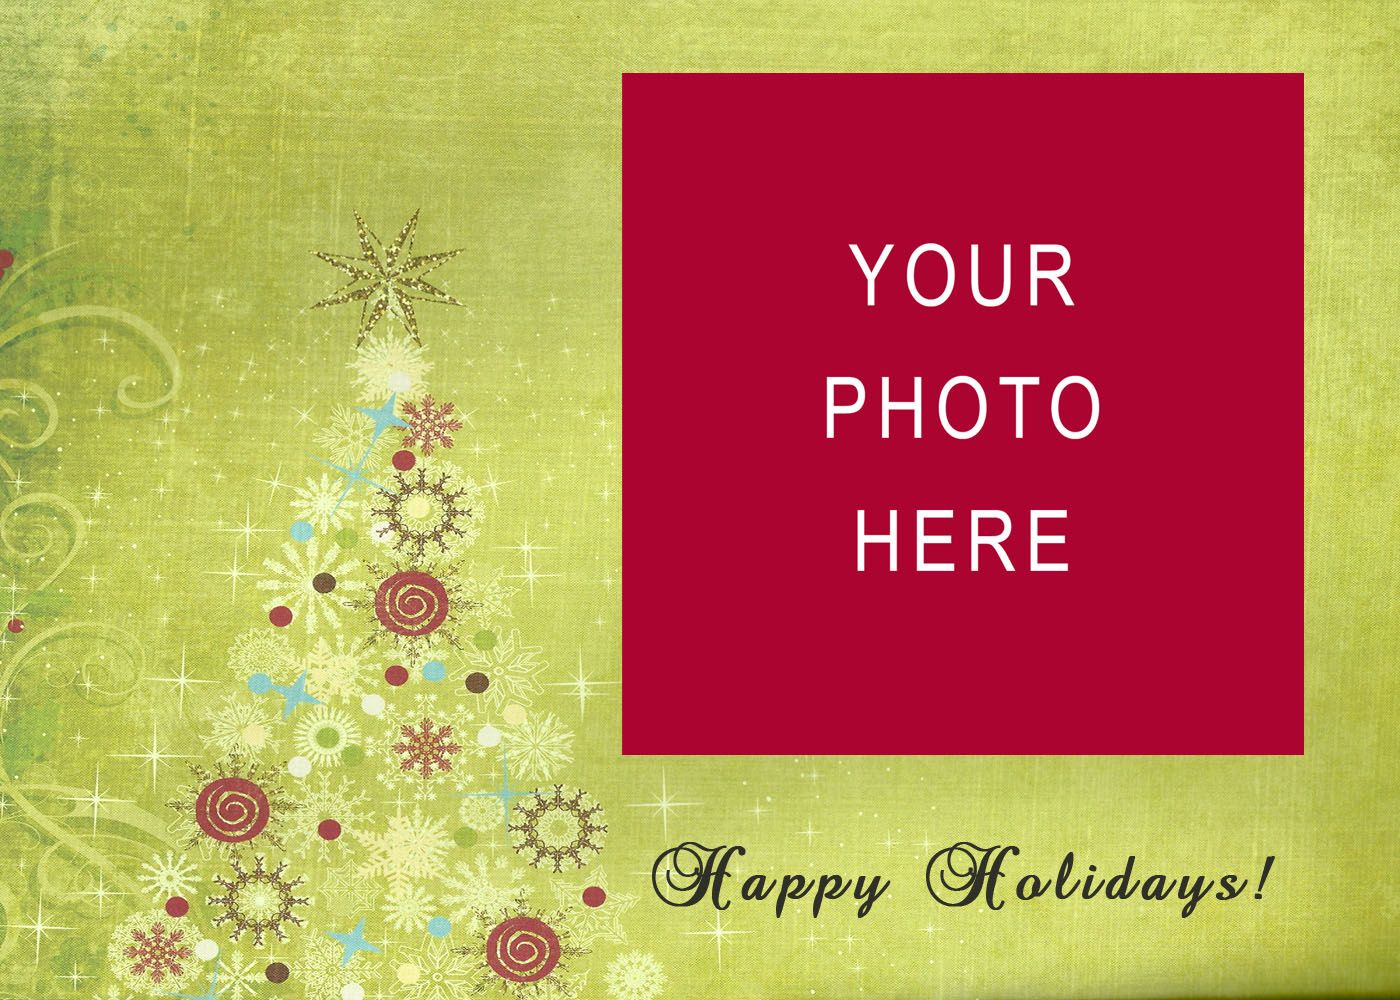 Christmas Templates Oh Joy Photography Free Holiday Card Templates Free Holiday Photo Card Templates Christmas Card Templates Free Printable Holiday Card